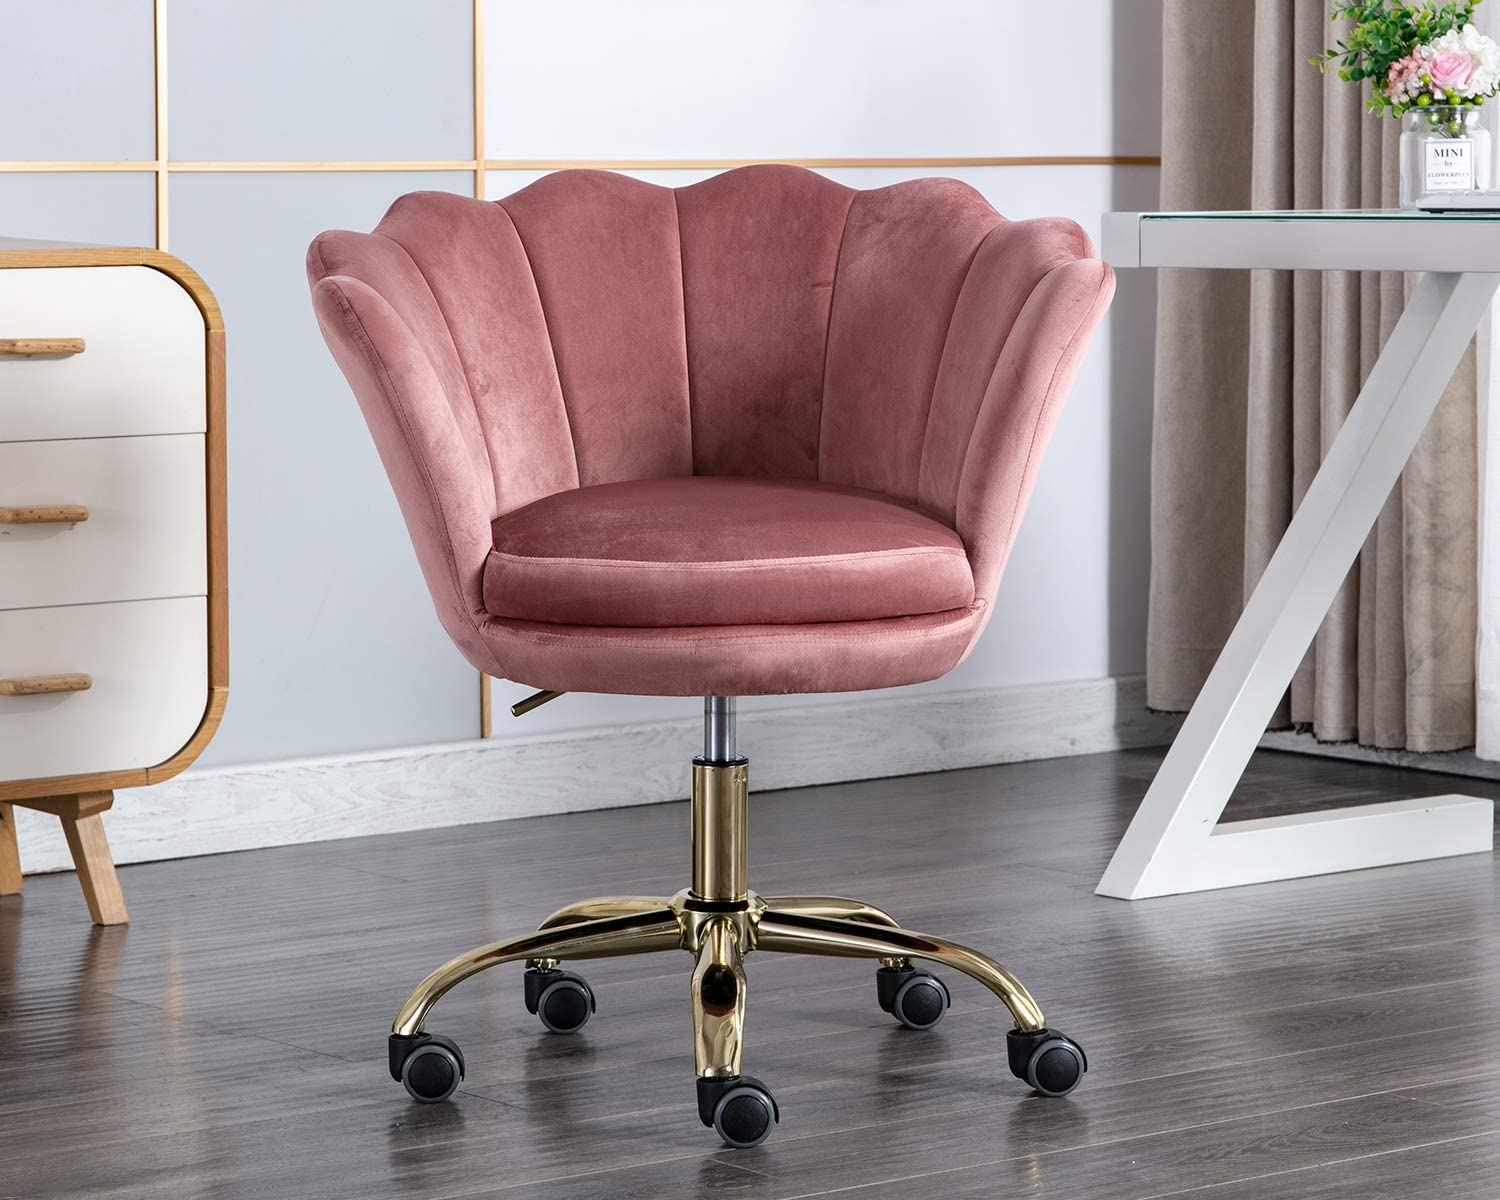 Chairus Home Office Chair, 360°Swivel Velvet Makeup Chair with Golden Base for Girl, Height Adjustable, Dusty Rose Pink